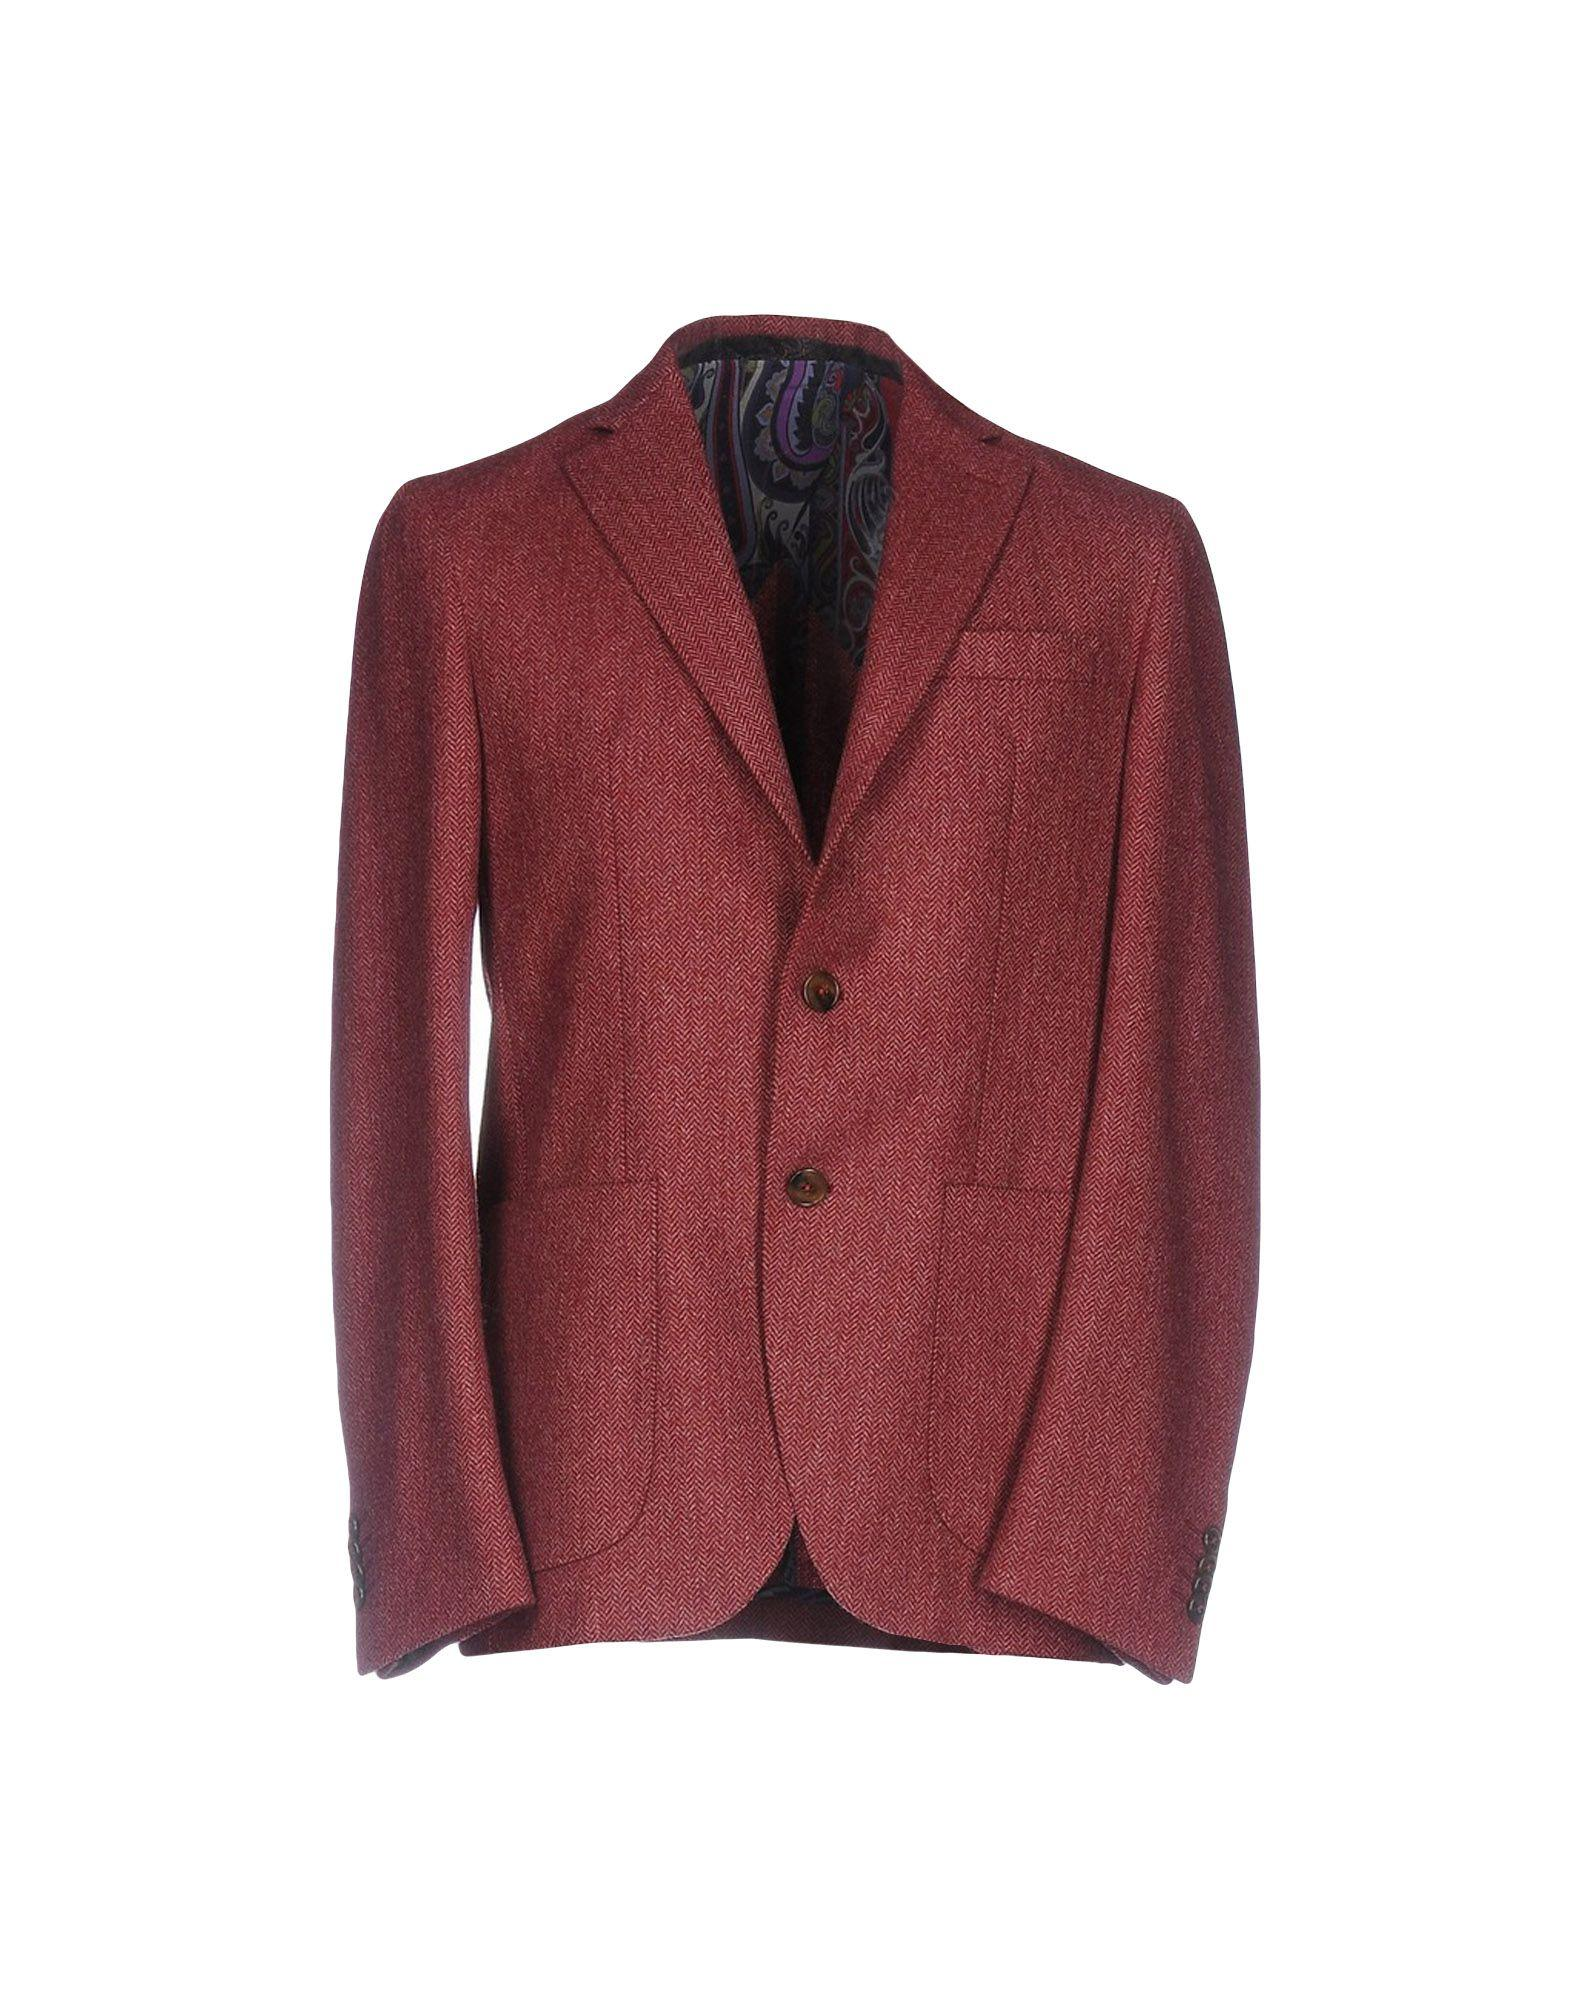 Flannel Motorcycle Jacket >> Lyst - Etro Blazer in Red for Men